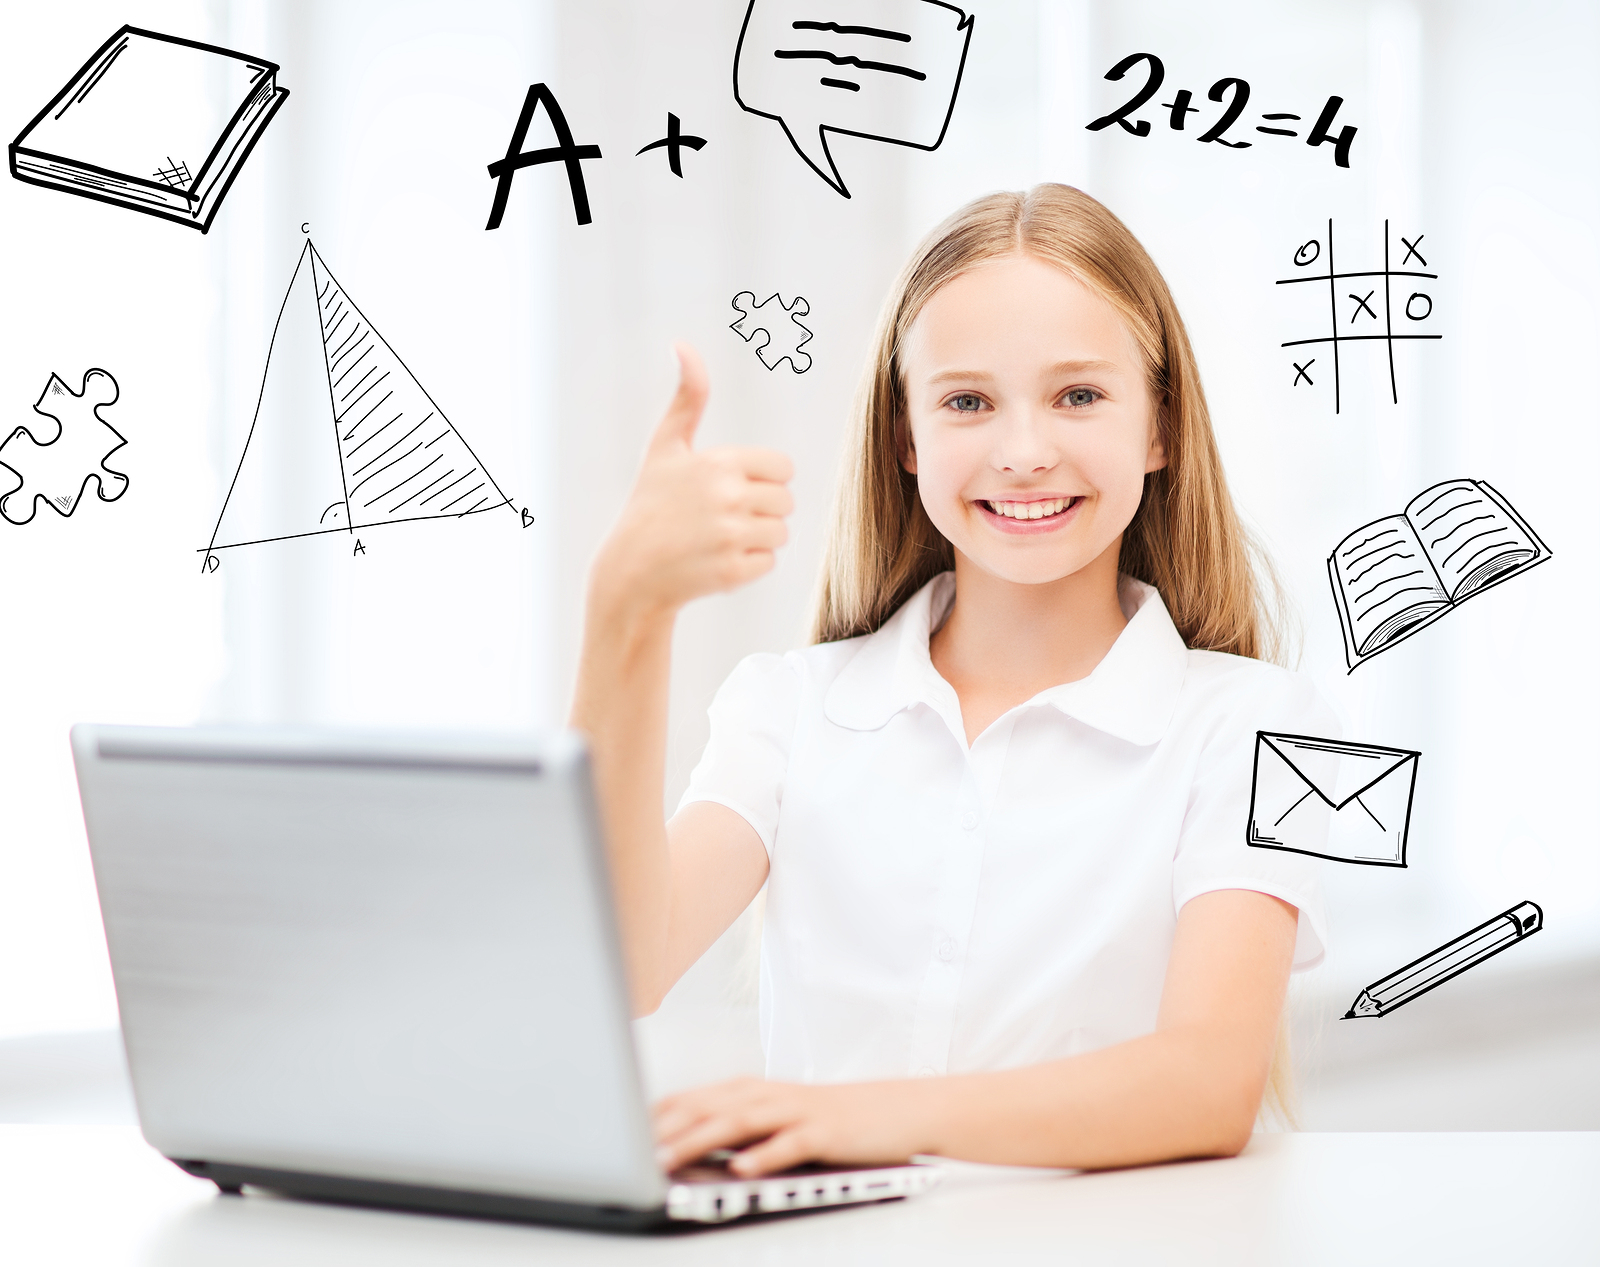 bigstock-education-school-technology--50091032